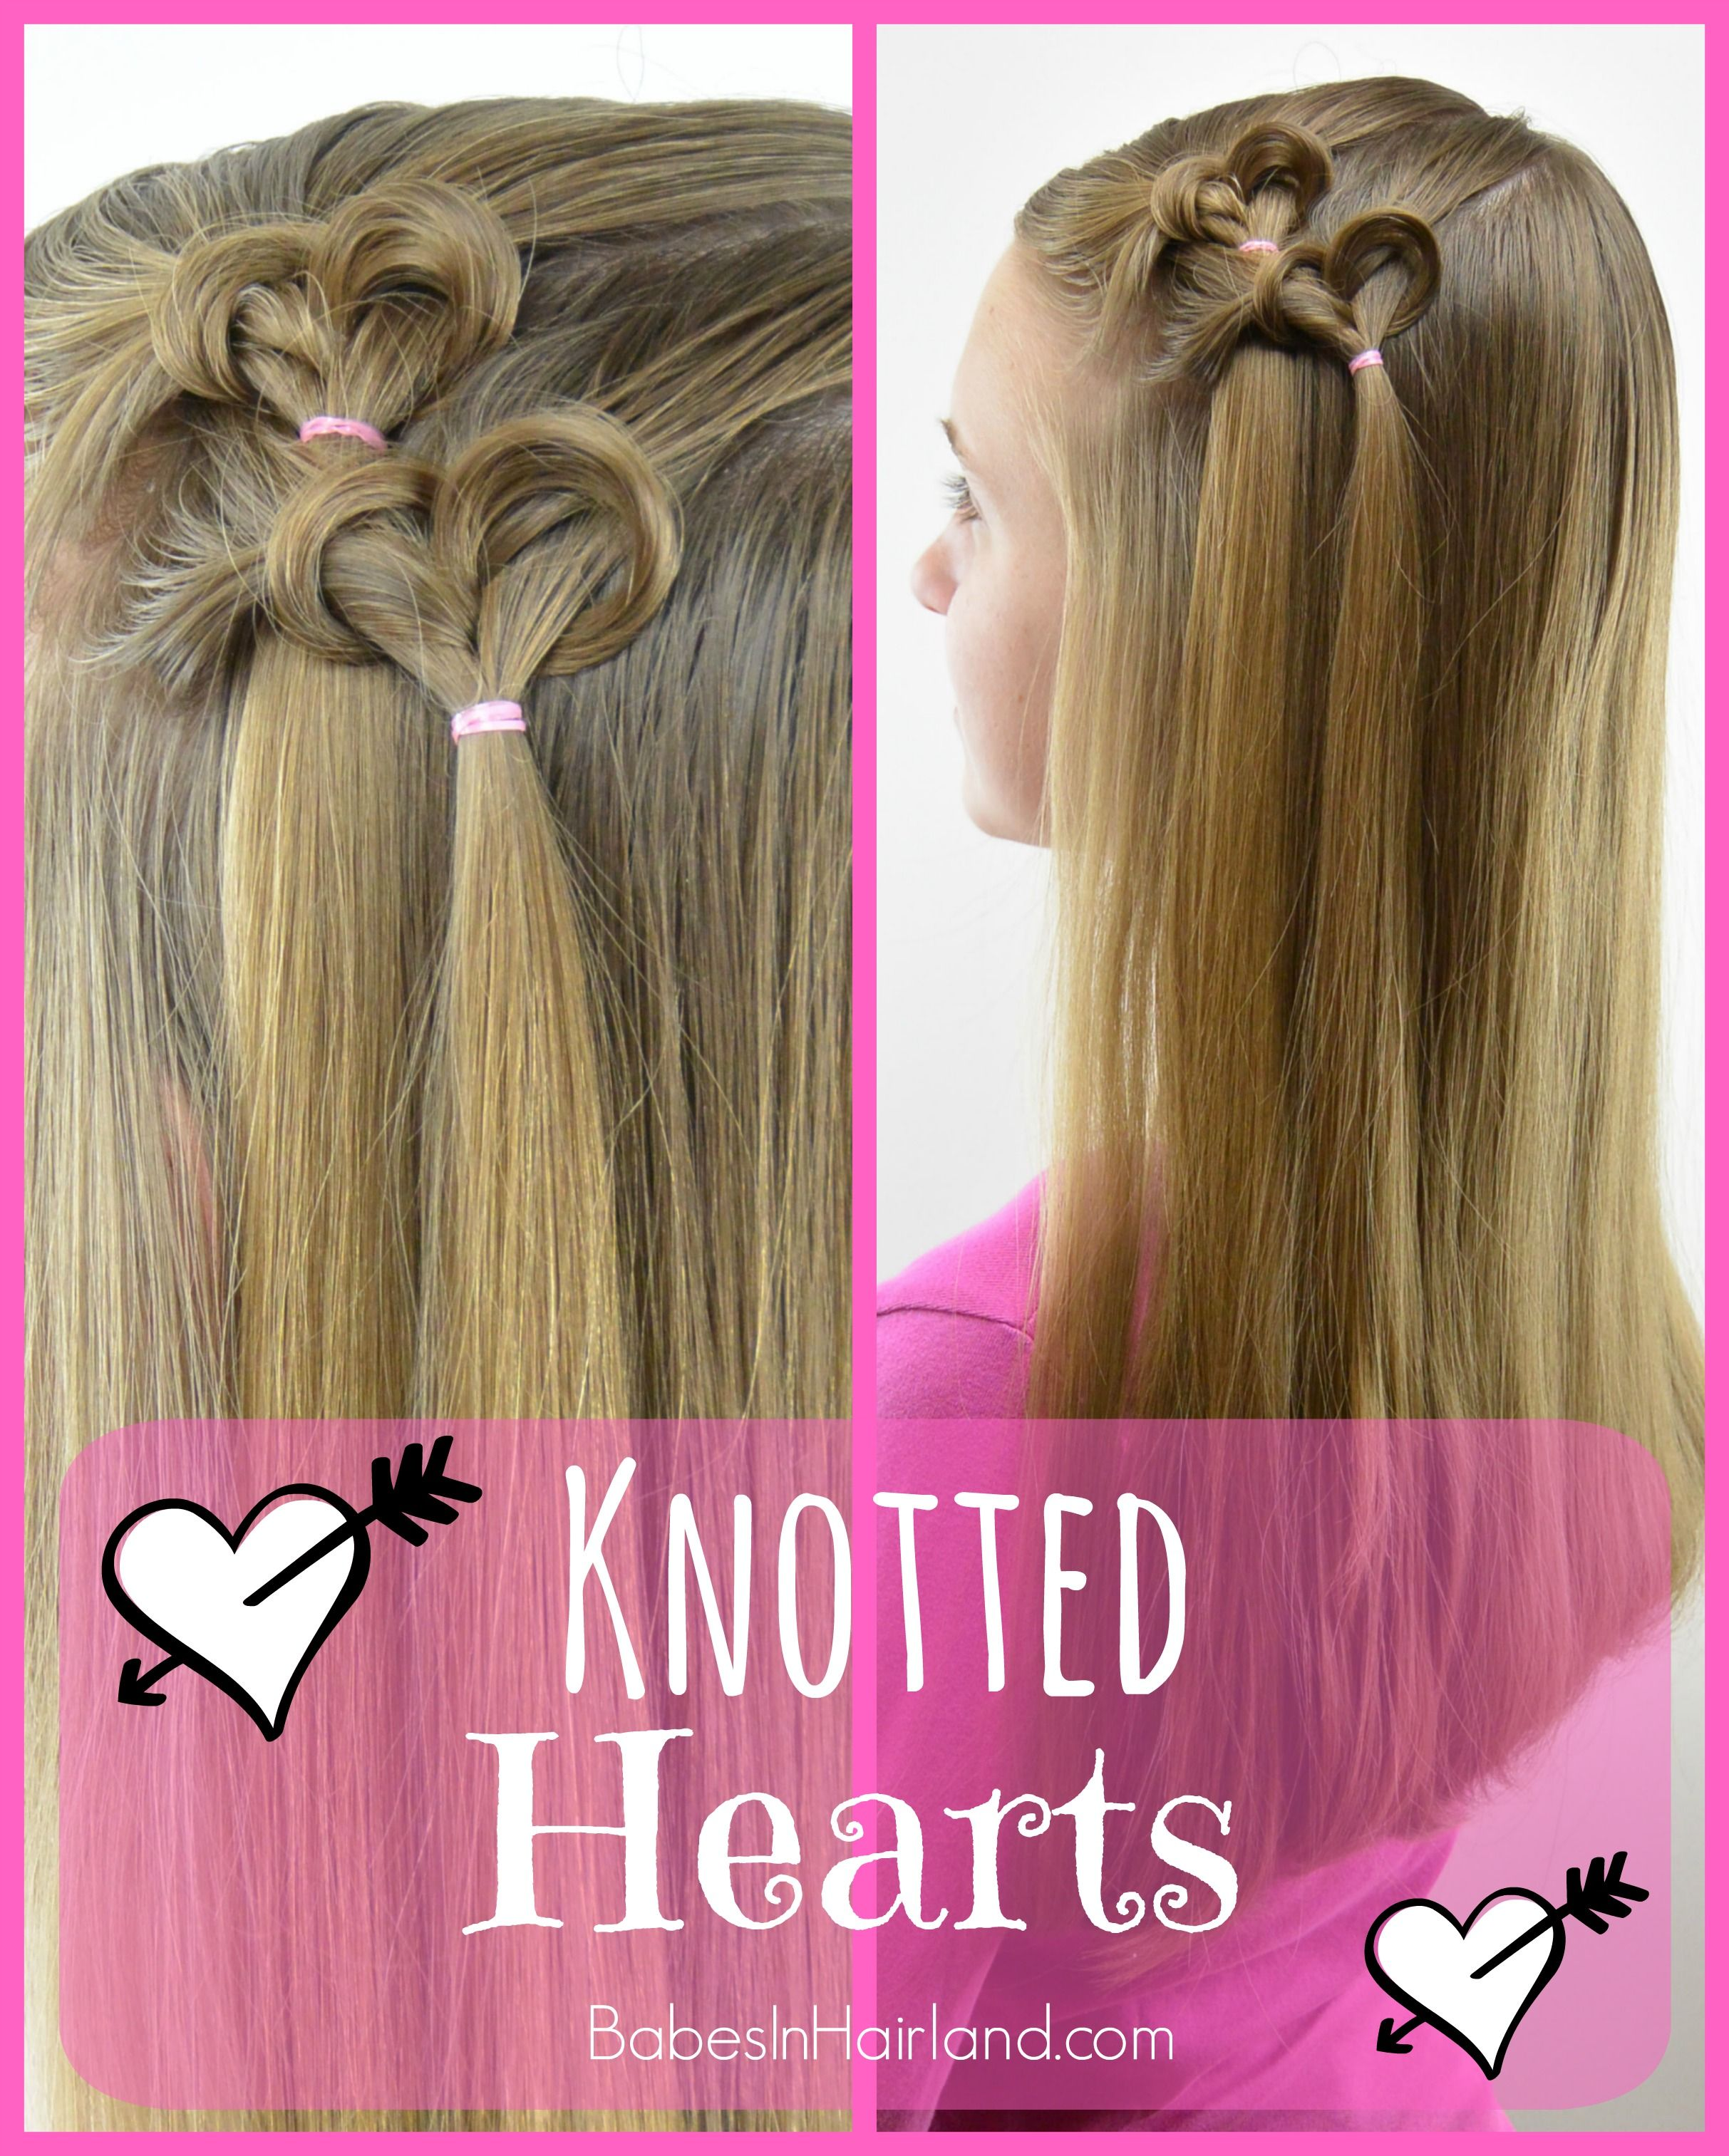 Knotted Hearts | Ruby hair styles | Pinterest | Heart hairstyles ...